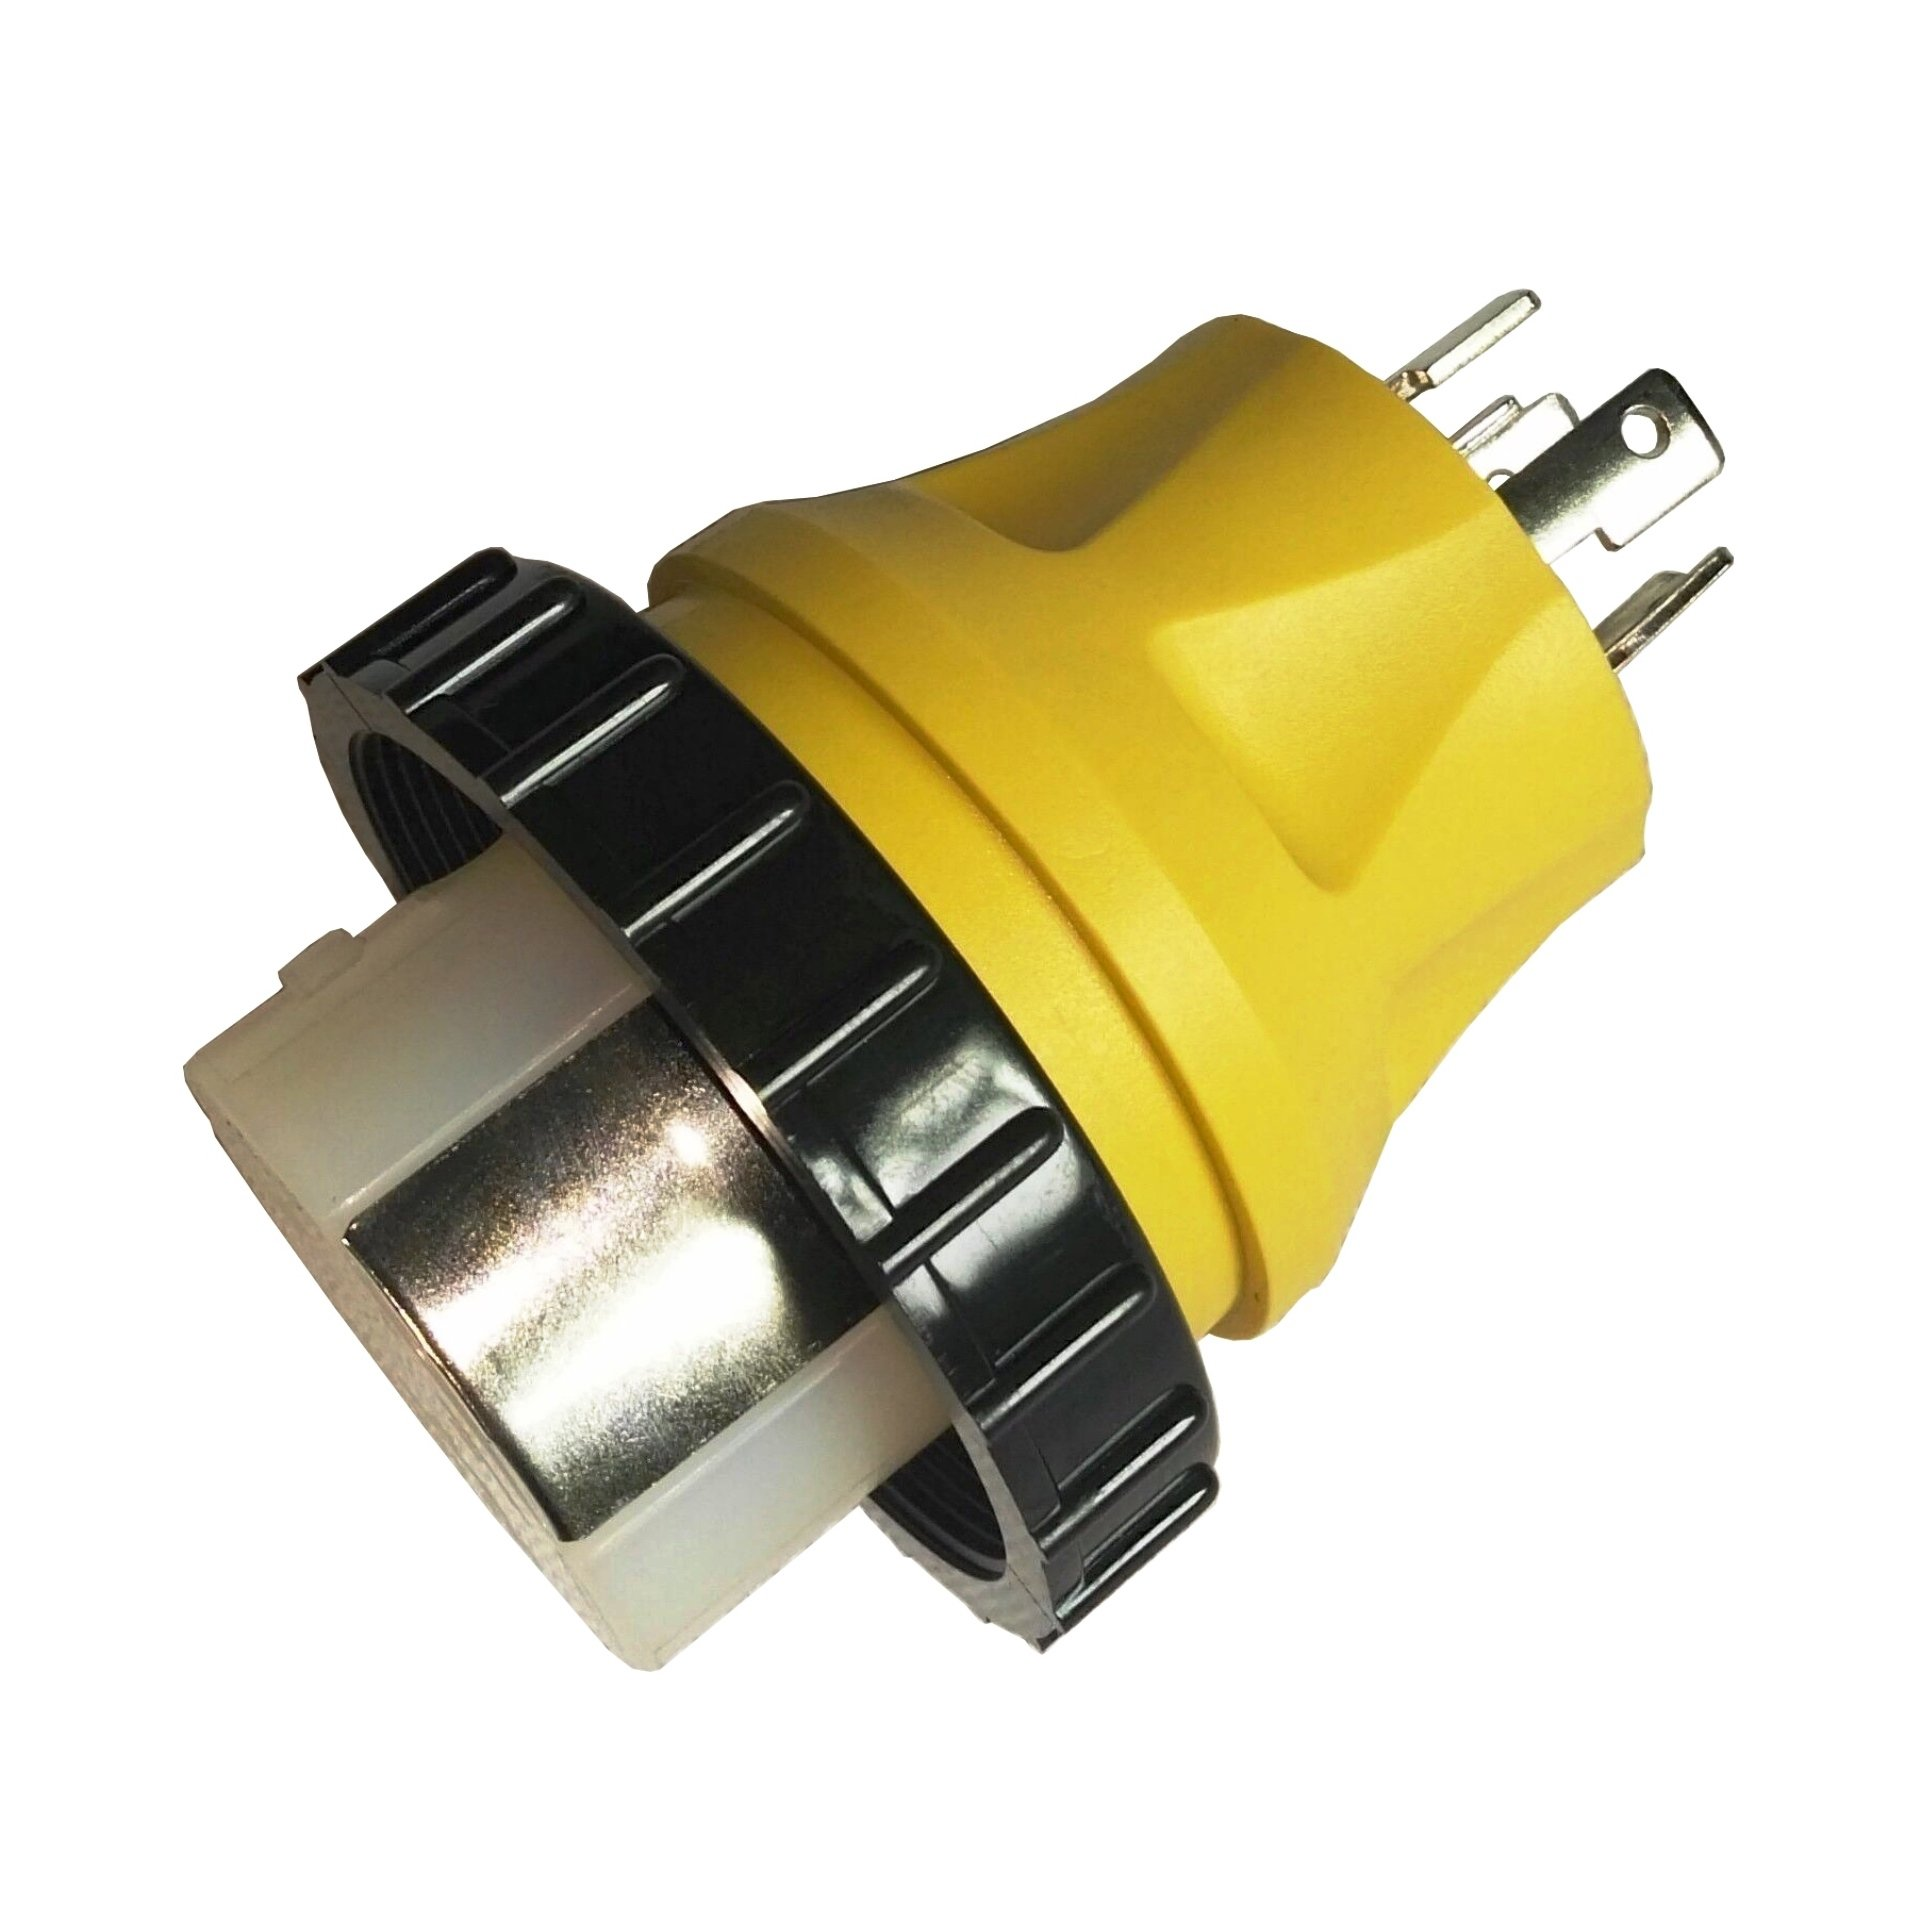 Parkworld 692118 Shore Power Adapter Generator 30A L14-30P male to Marine 50A SS2-50R female with locking ring